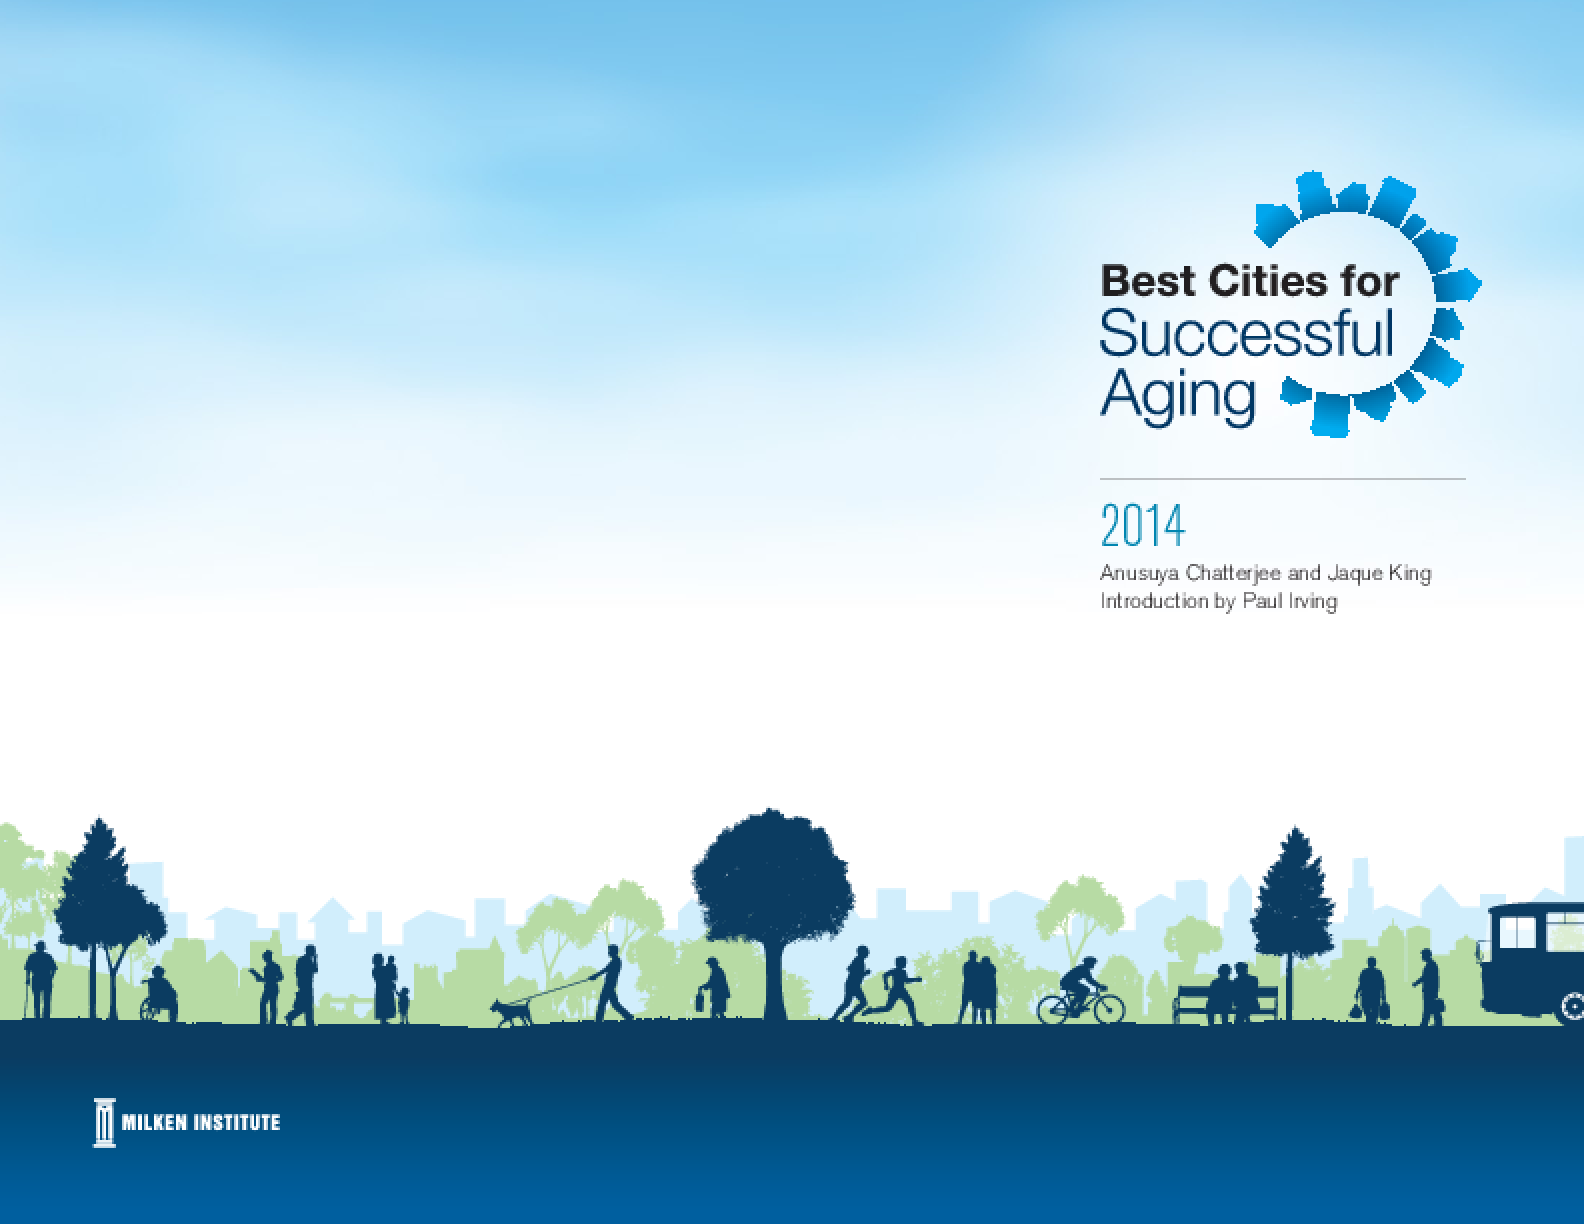 Best Cities for Successful Aging: 2014